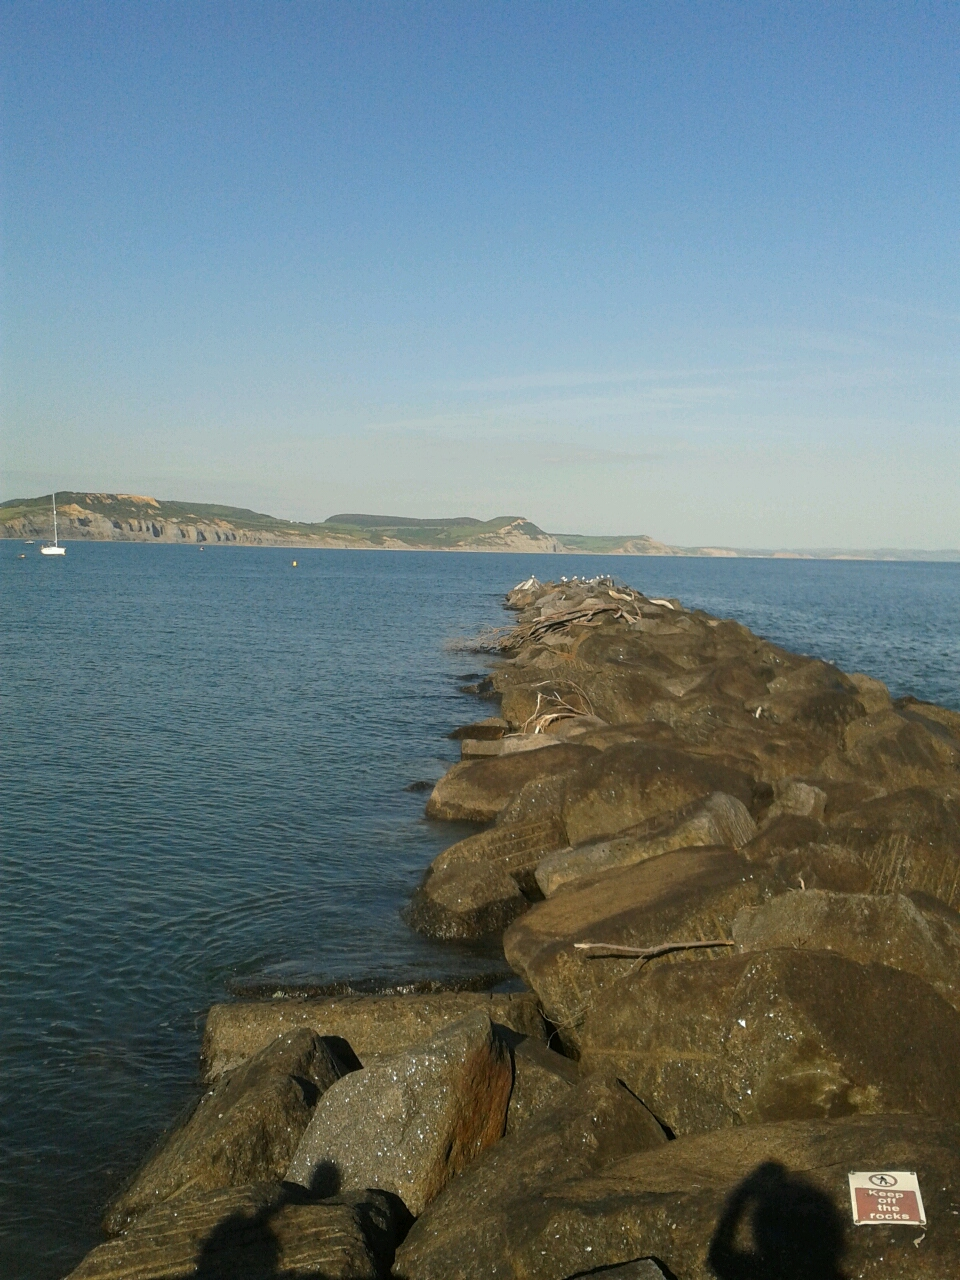 Jurassic Cliffs from the famous Lyme Regis Cobb